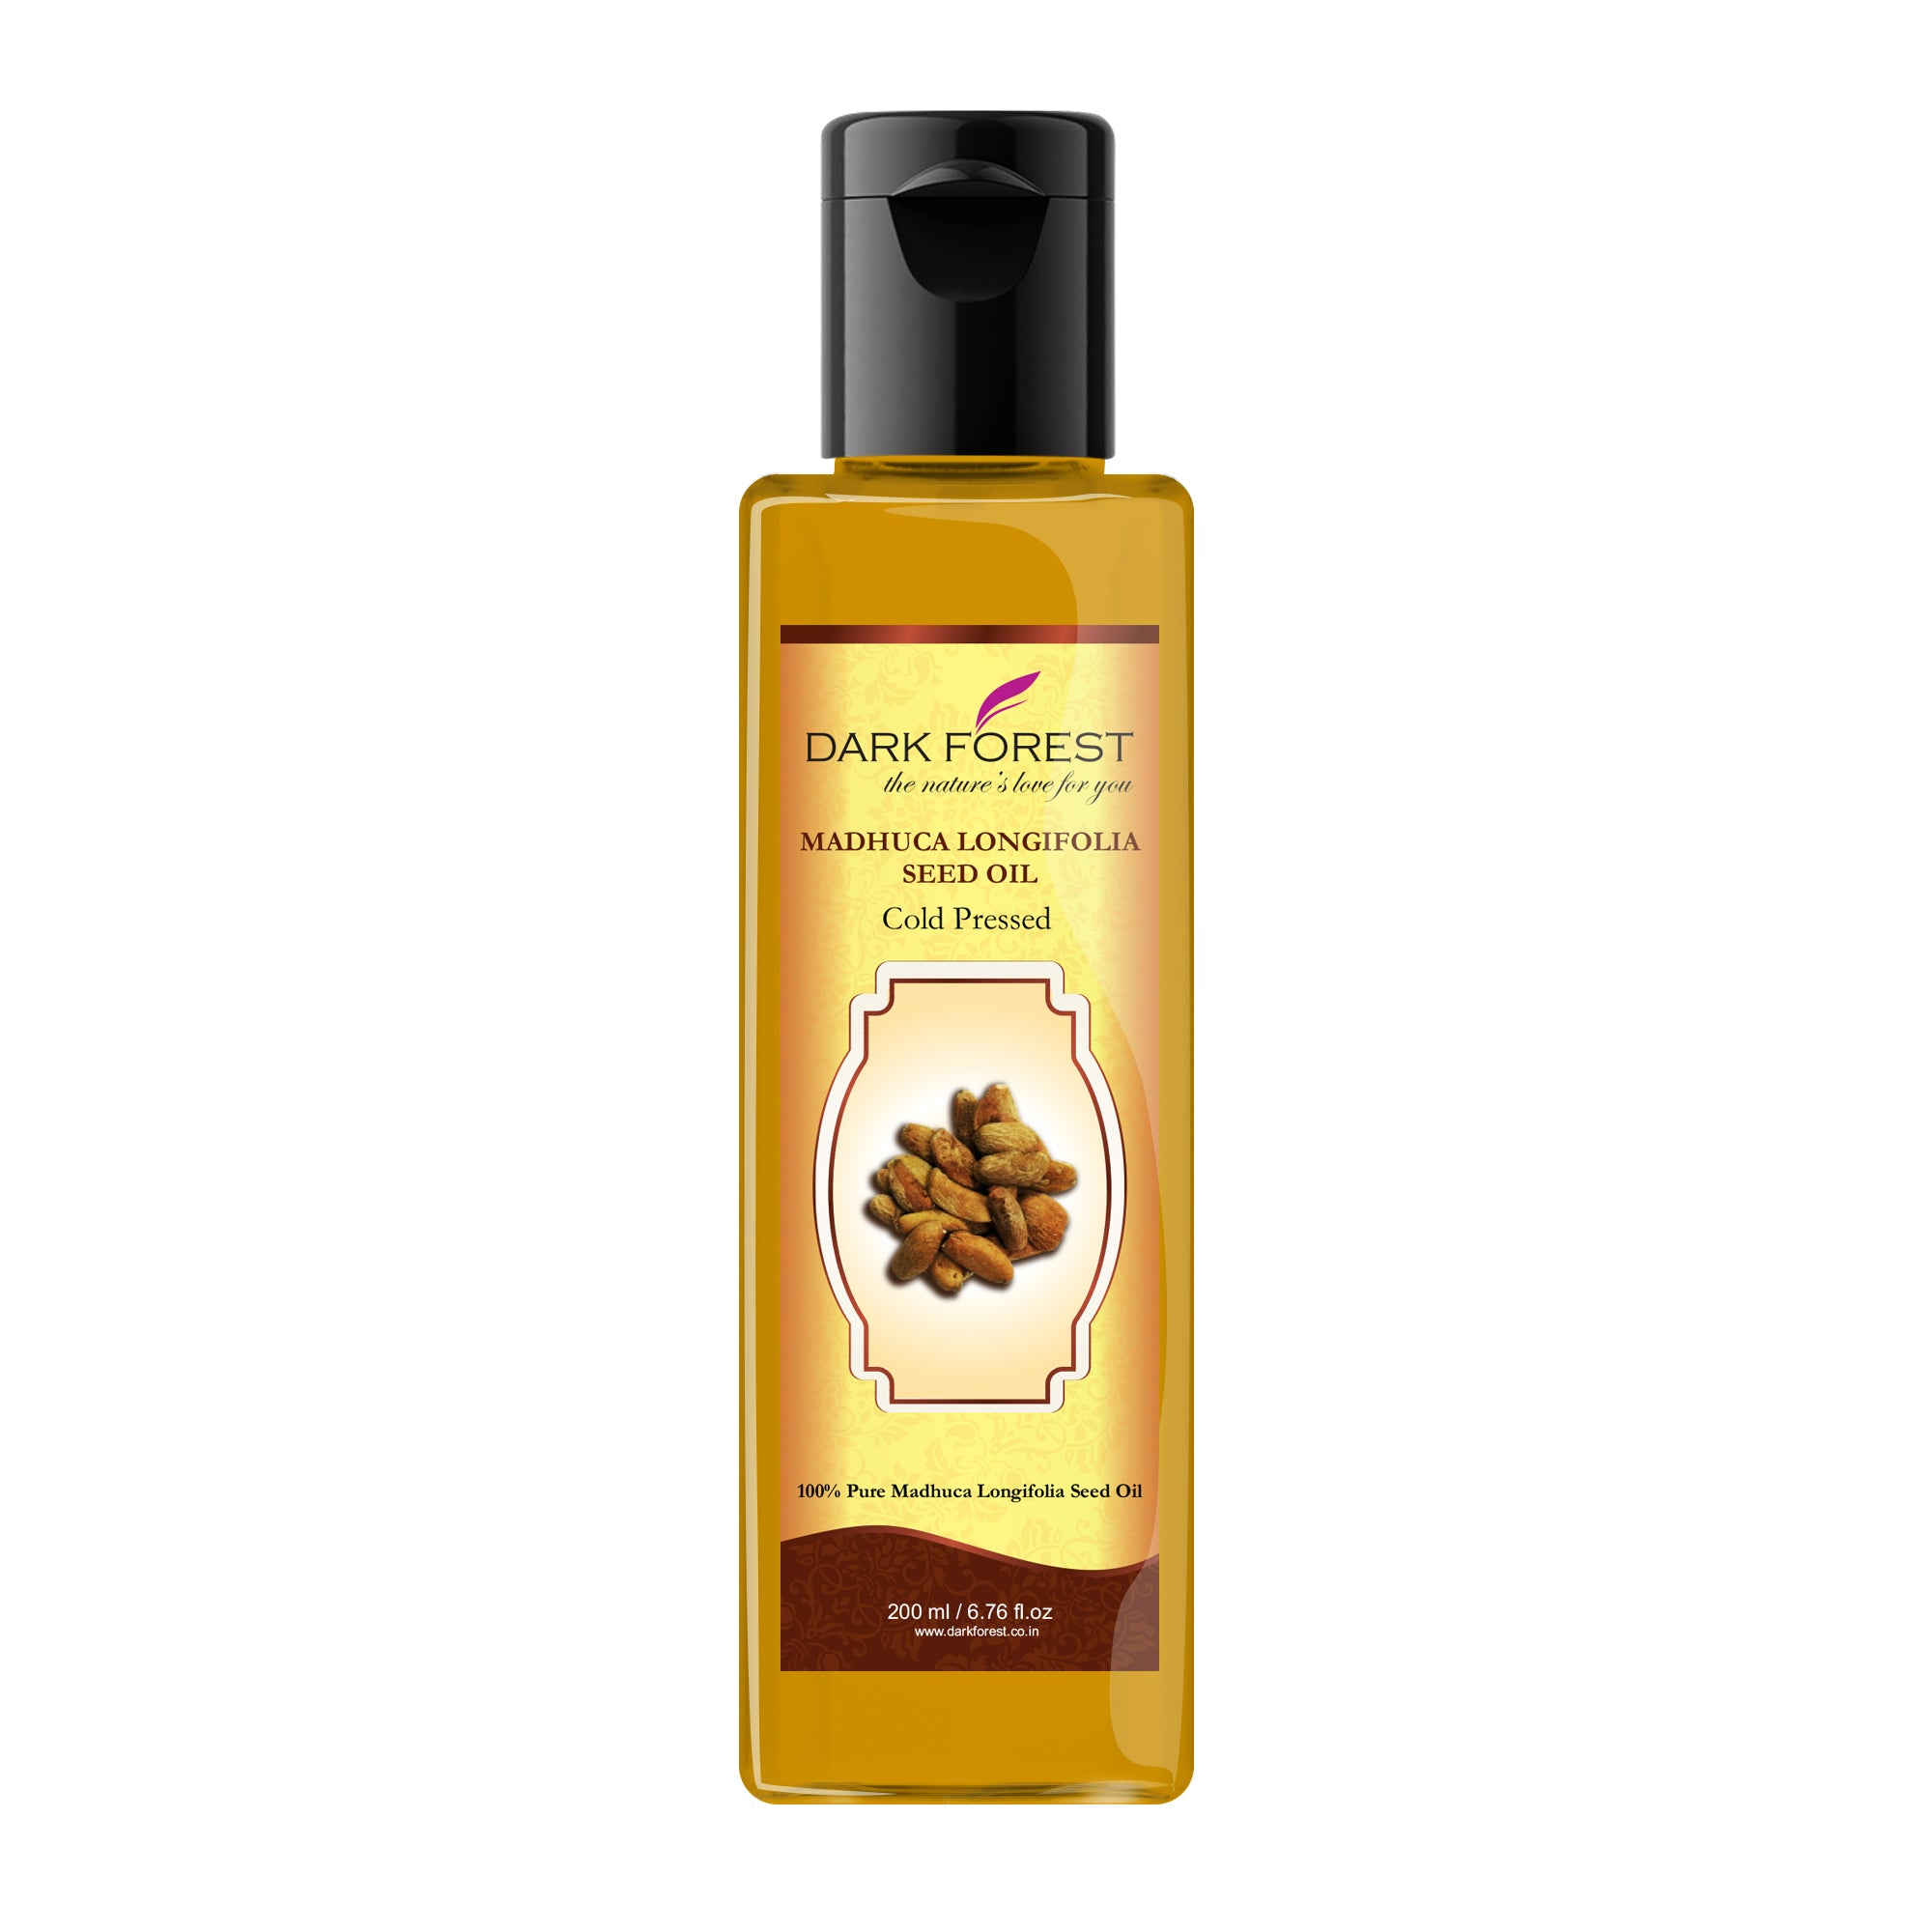 Dark Forest Cold Pressed Madhuca Longifolia Seed Oil